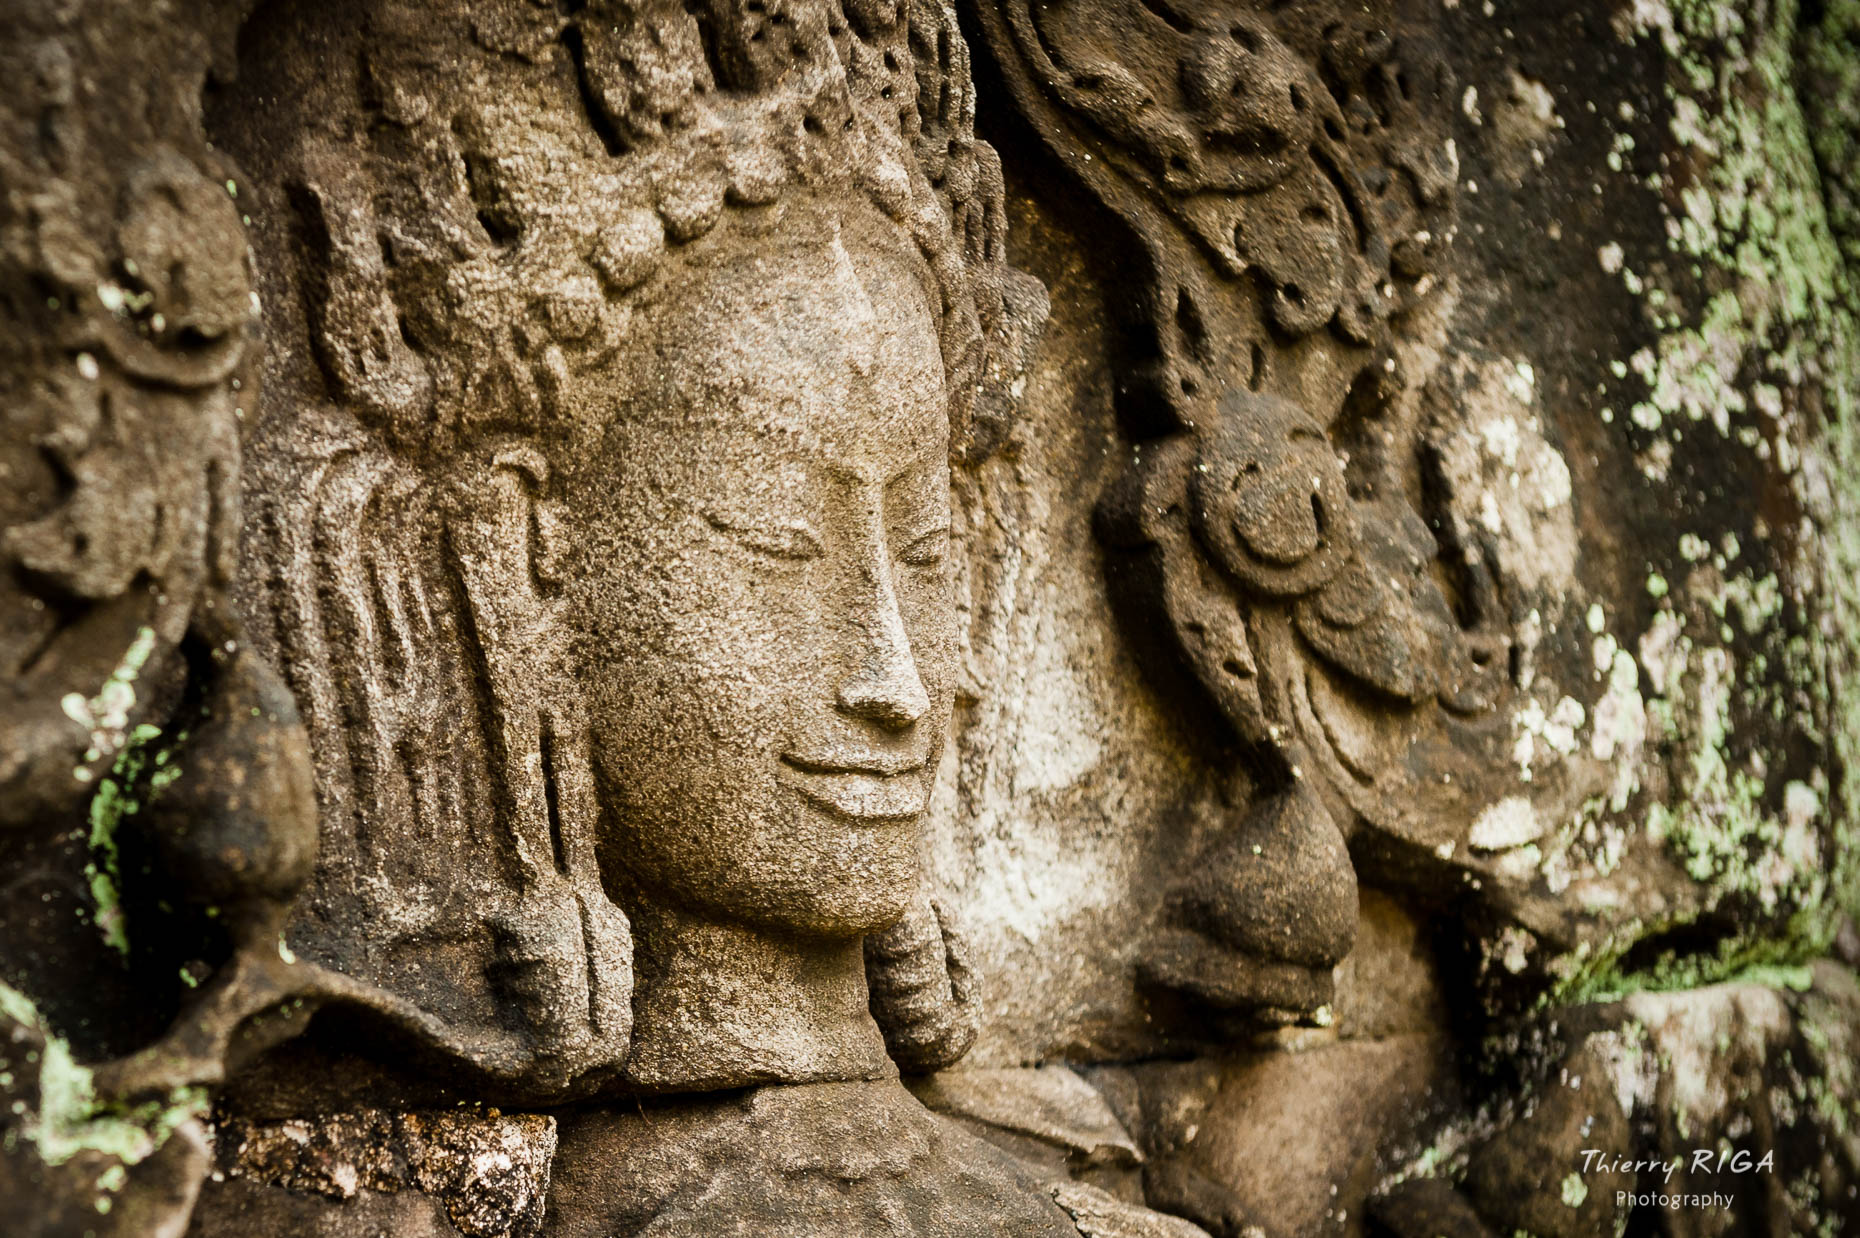 Angkor_Thierry_Riga_photography-_D7C1527Copy_2